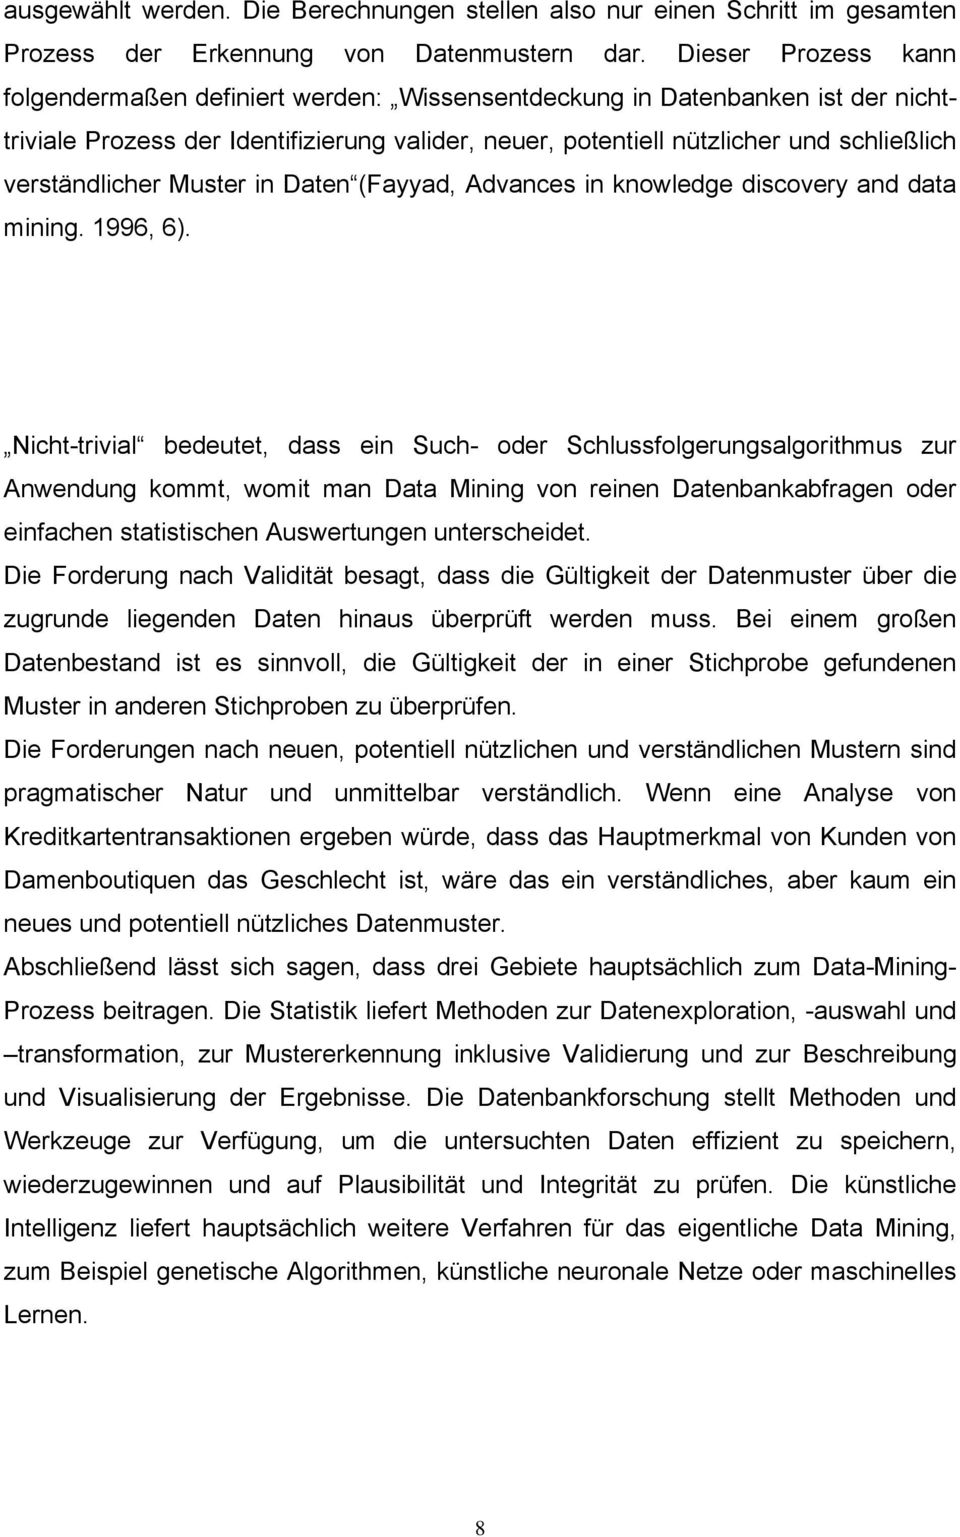 verständlicher Muster in Daten (Fayyad, Advances in knowledge discovery and data mining. 1996, 6).